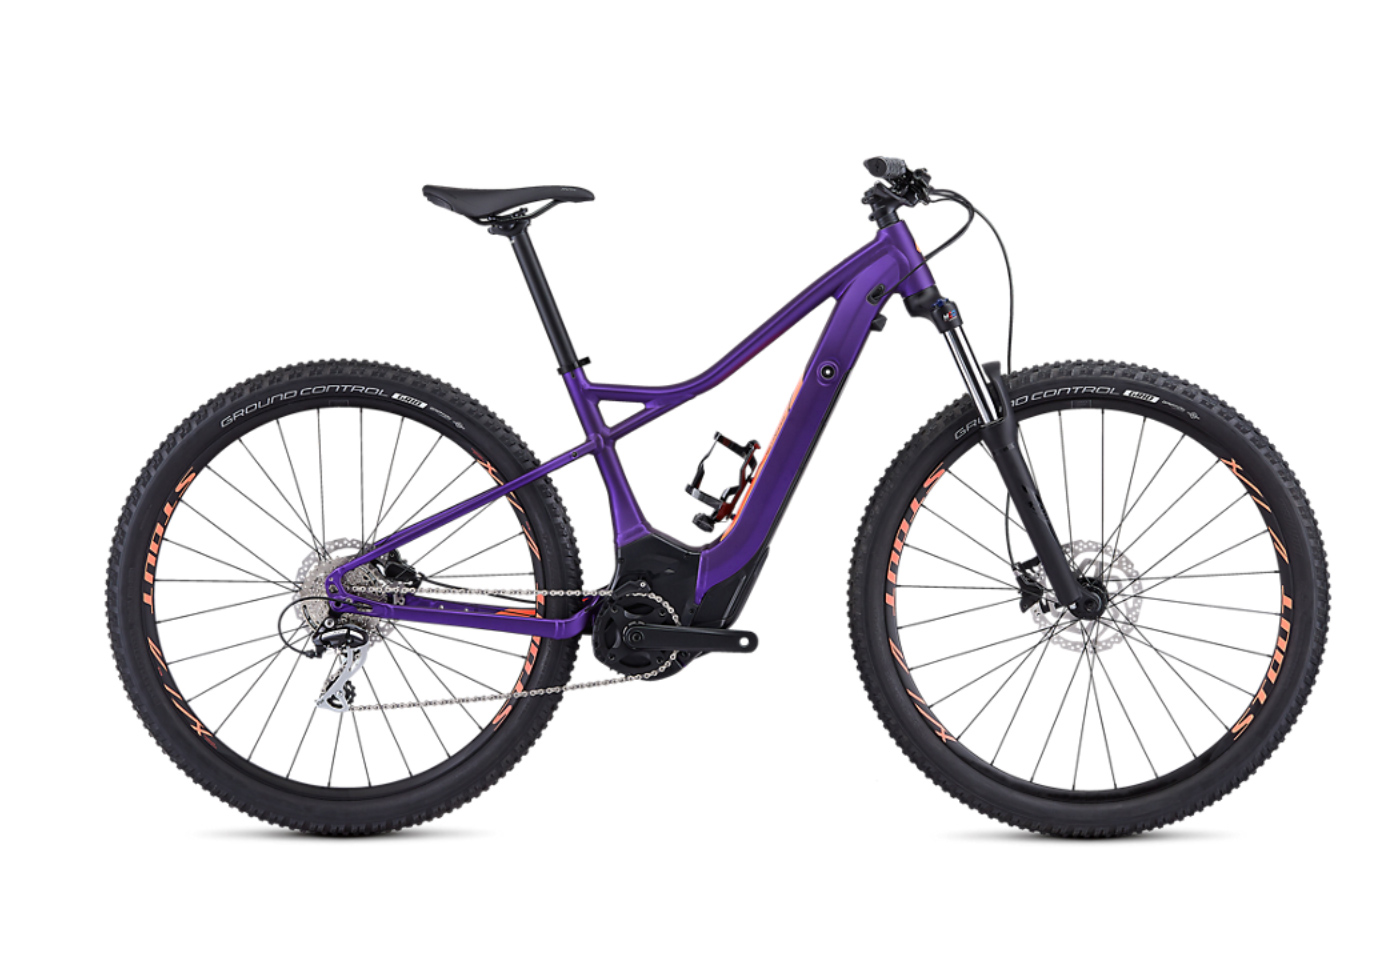 Specialized Women's Turbo Levo Hardtail 29 2019